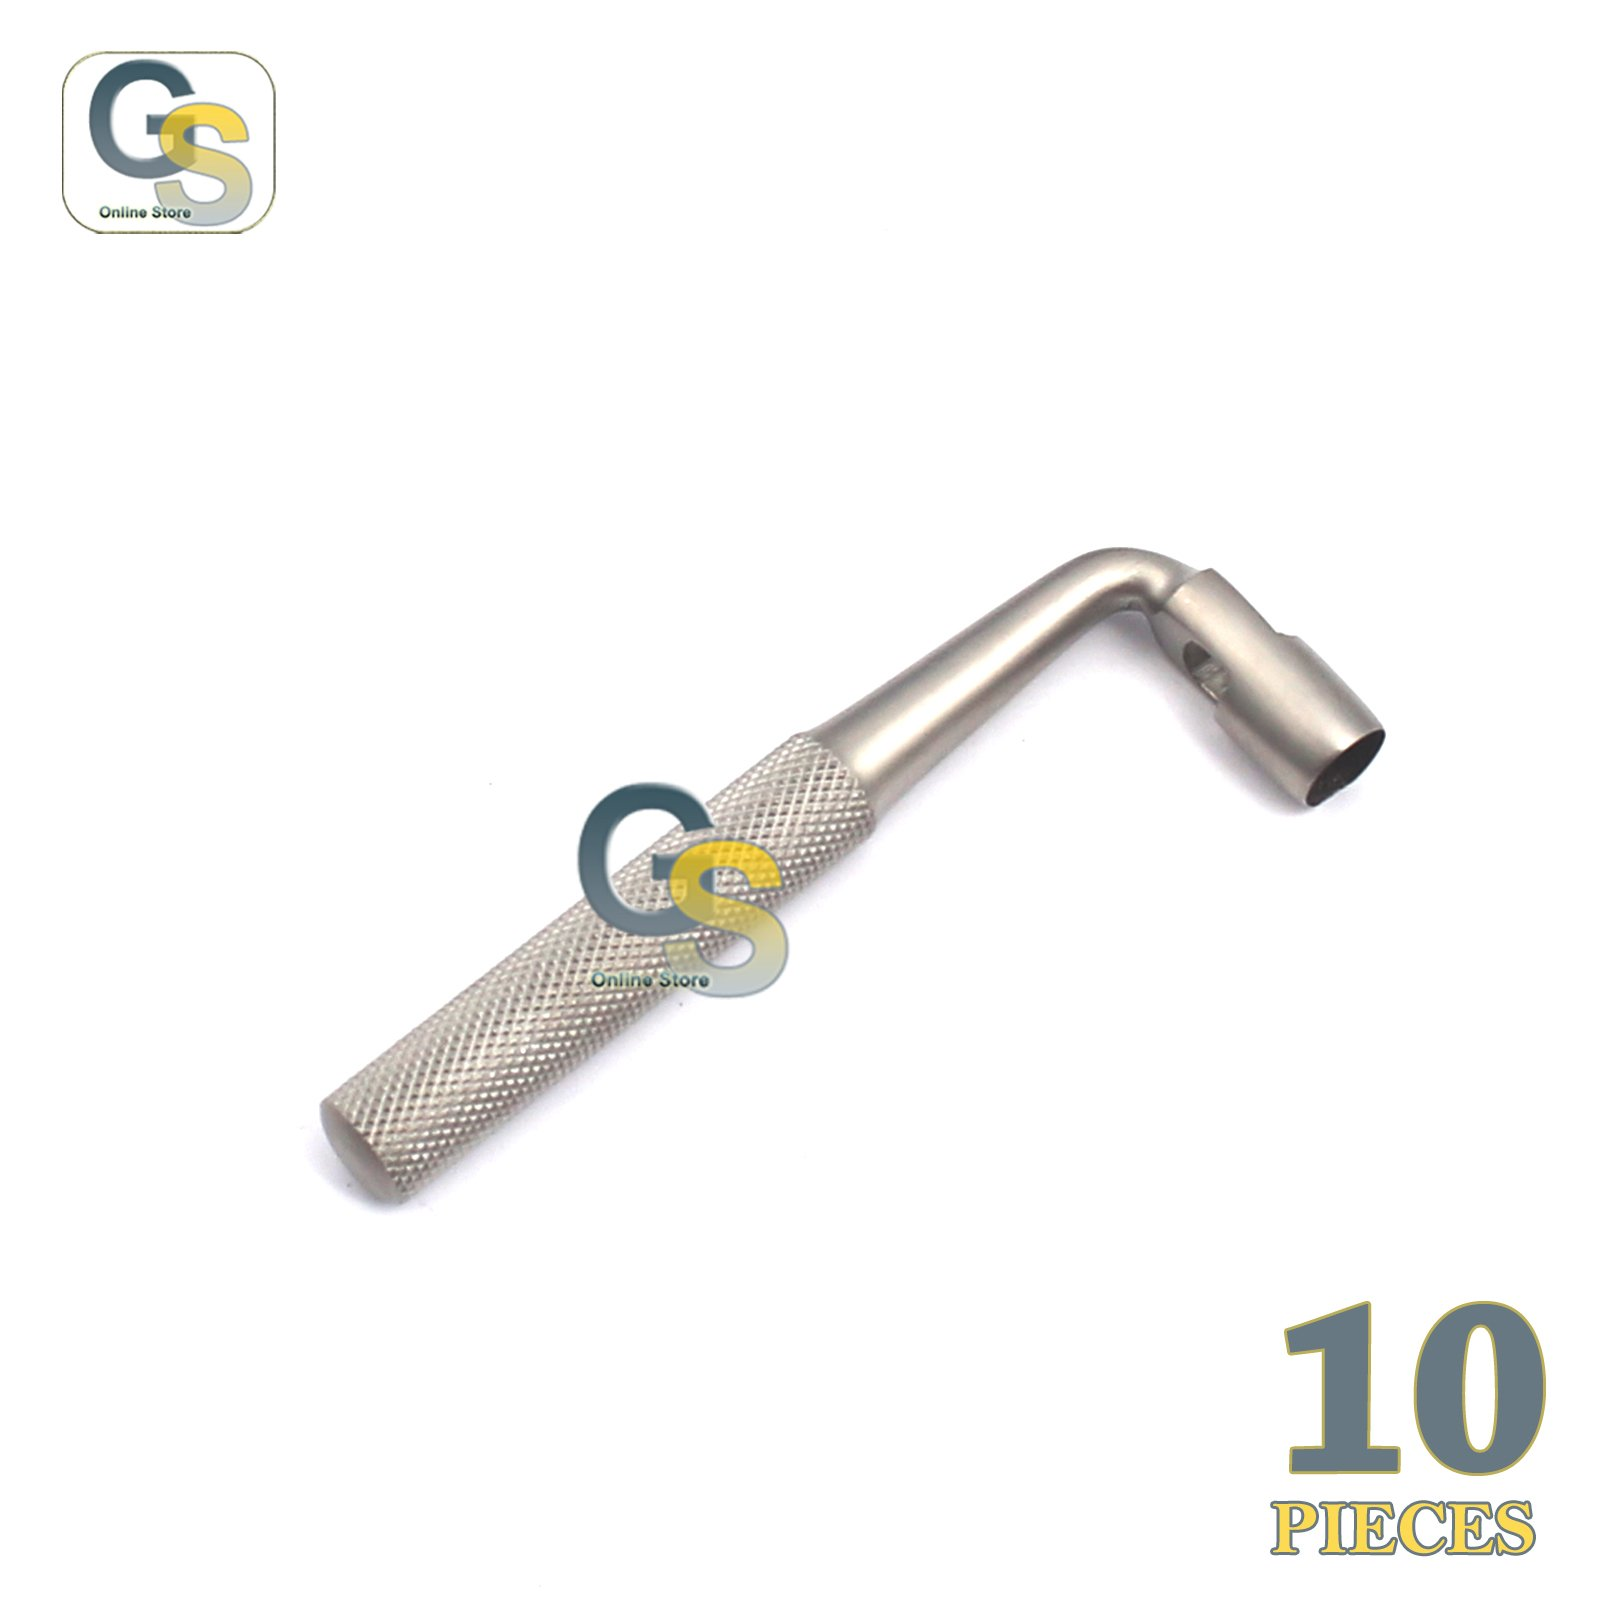 G.S 10 PCS TISSUE PUNCH 5MM ANGLED/OFFSET/CURVED DENTAL IMPLANT STAINLESS STEEL INSTRUMENTS BEST QUALITY